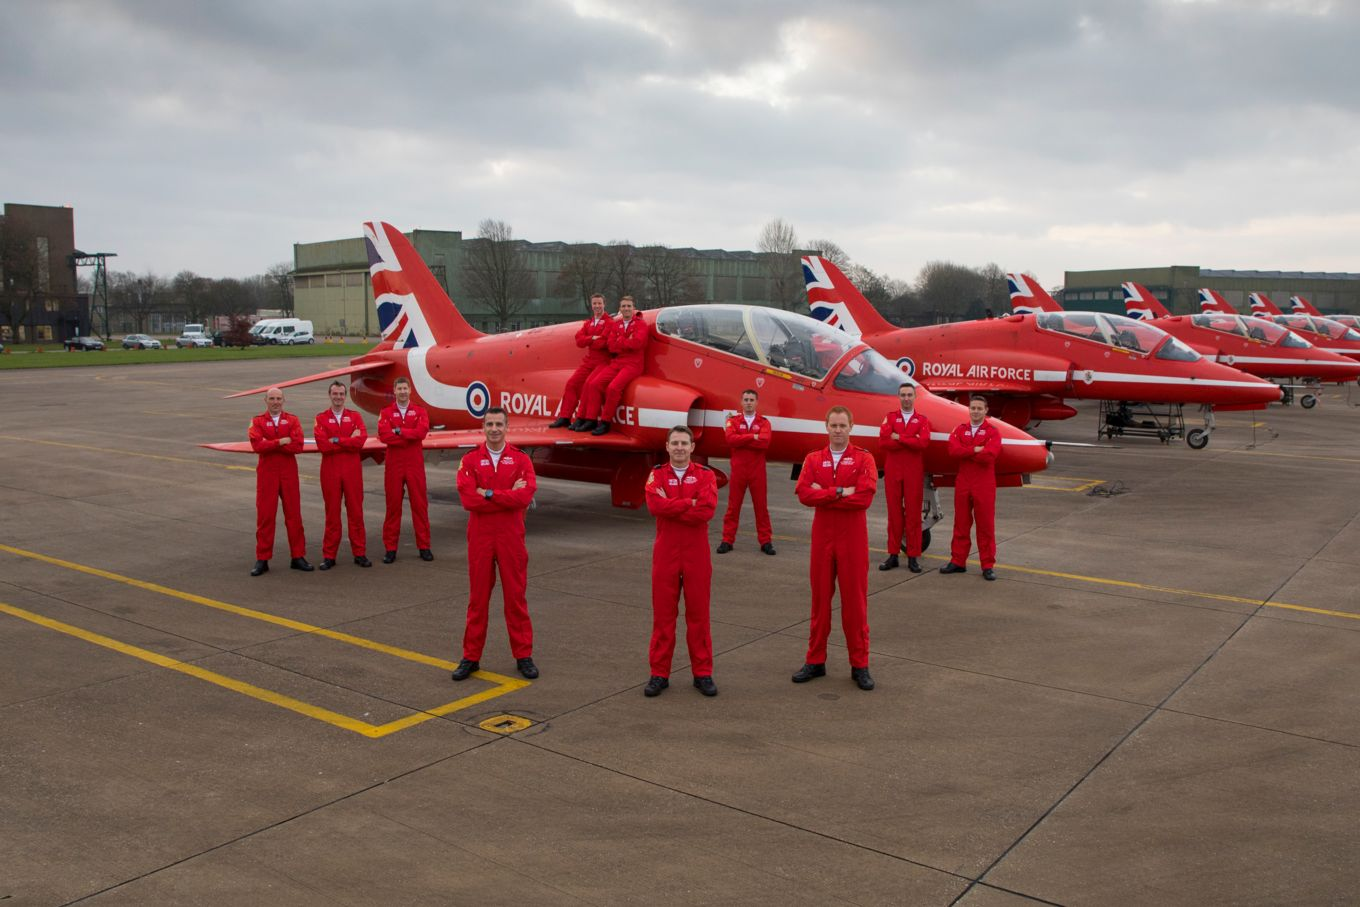 Reds 1-11: The Red Arrows pilots.